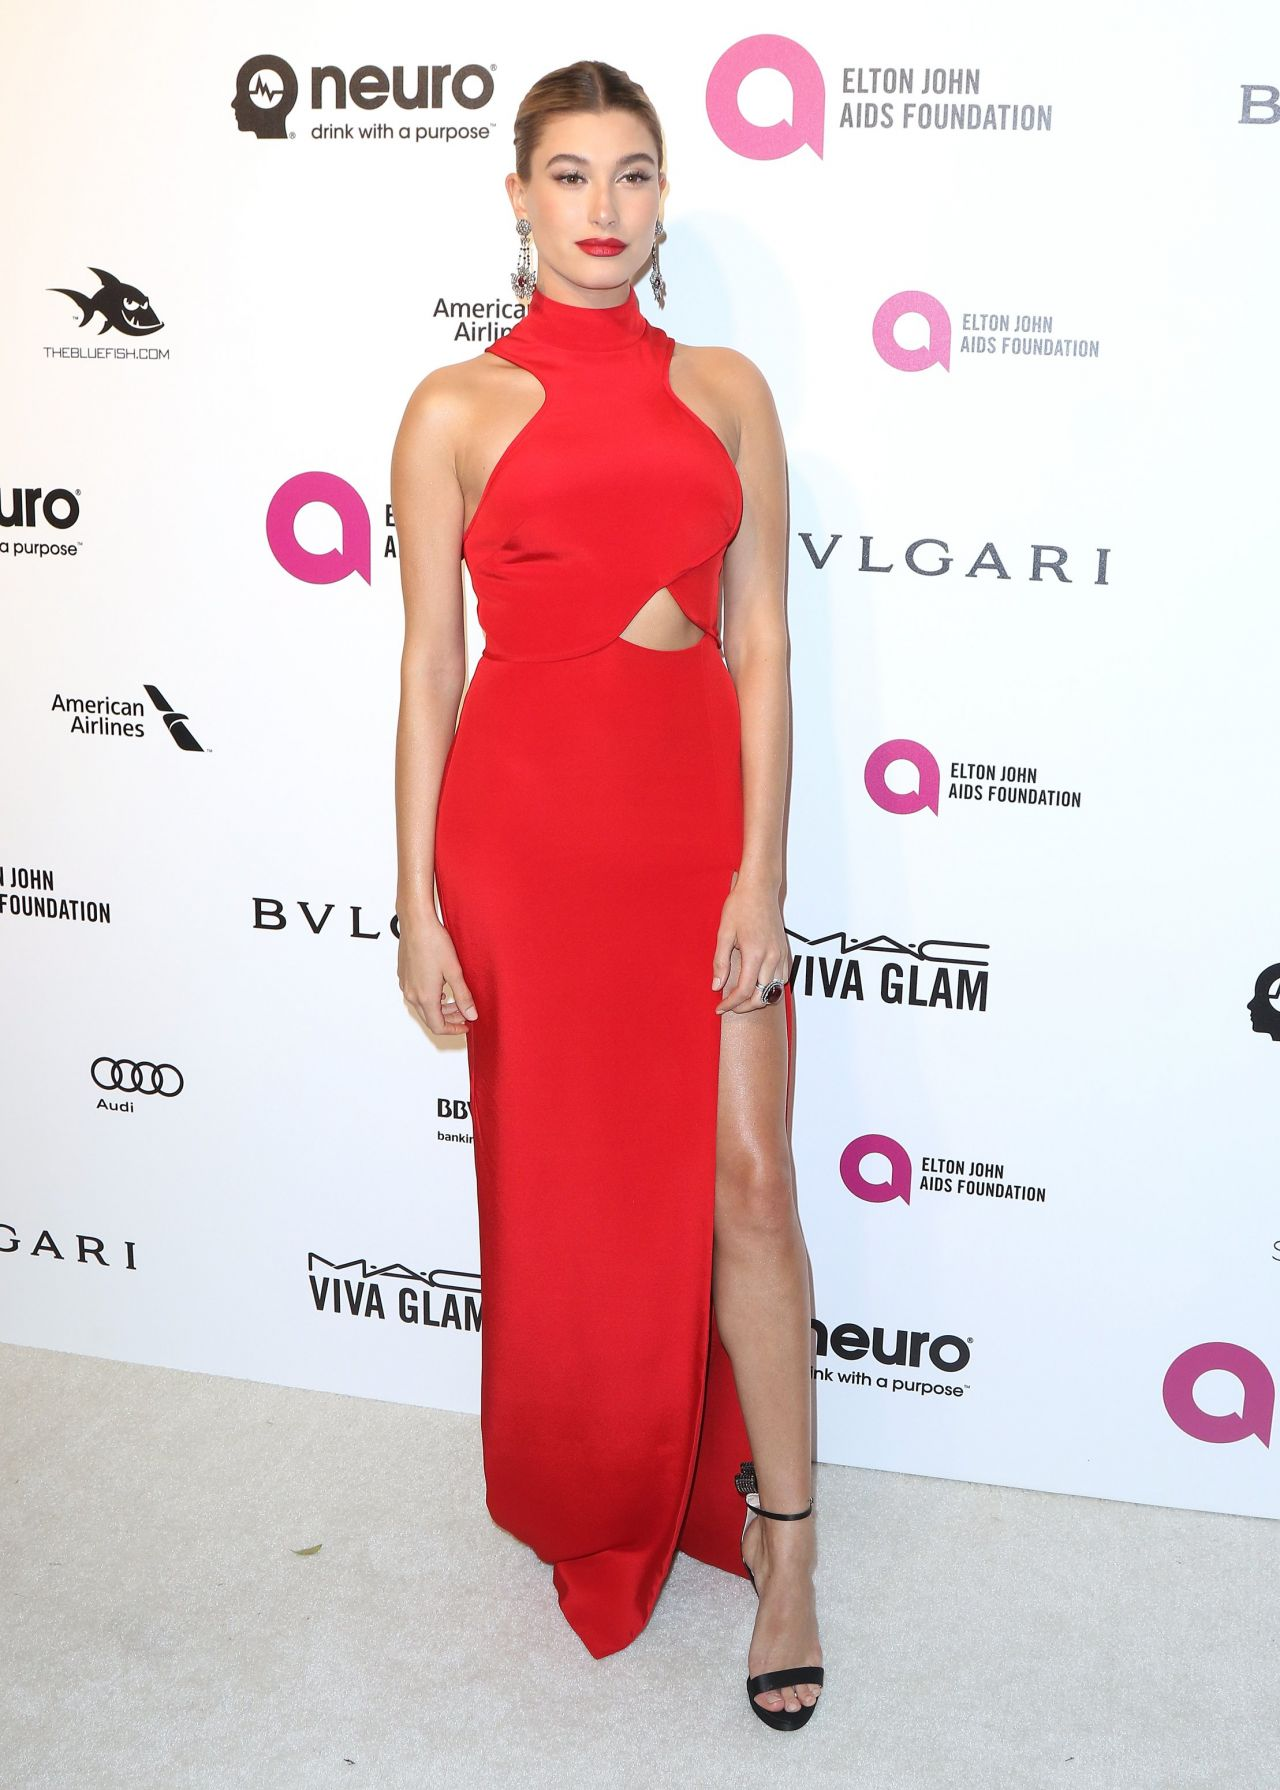 hailey-baldwin-2016-elton-john-aids-foundation-s-oscar-viewing-party-in-west-hollywood-ca-11